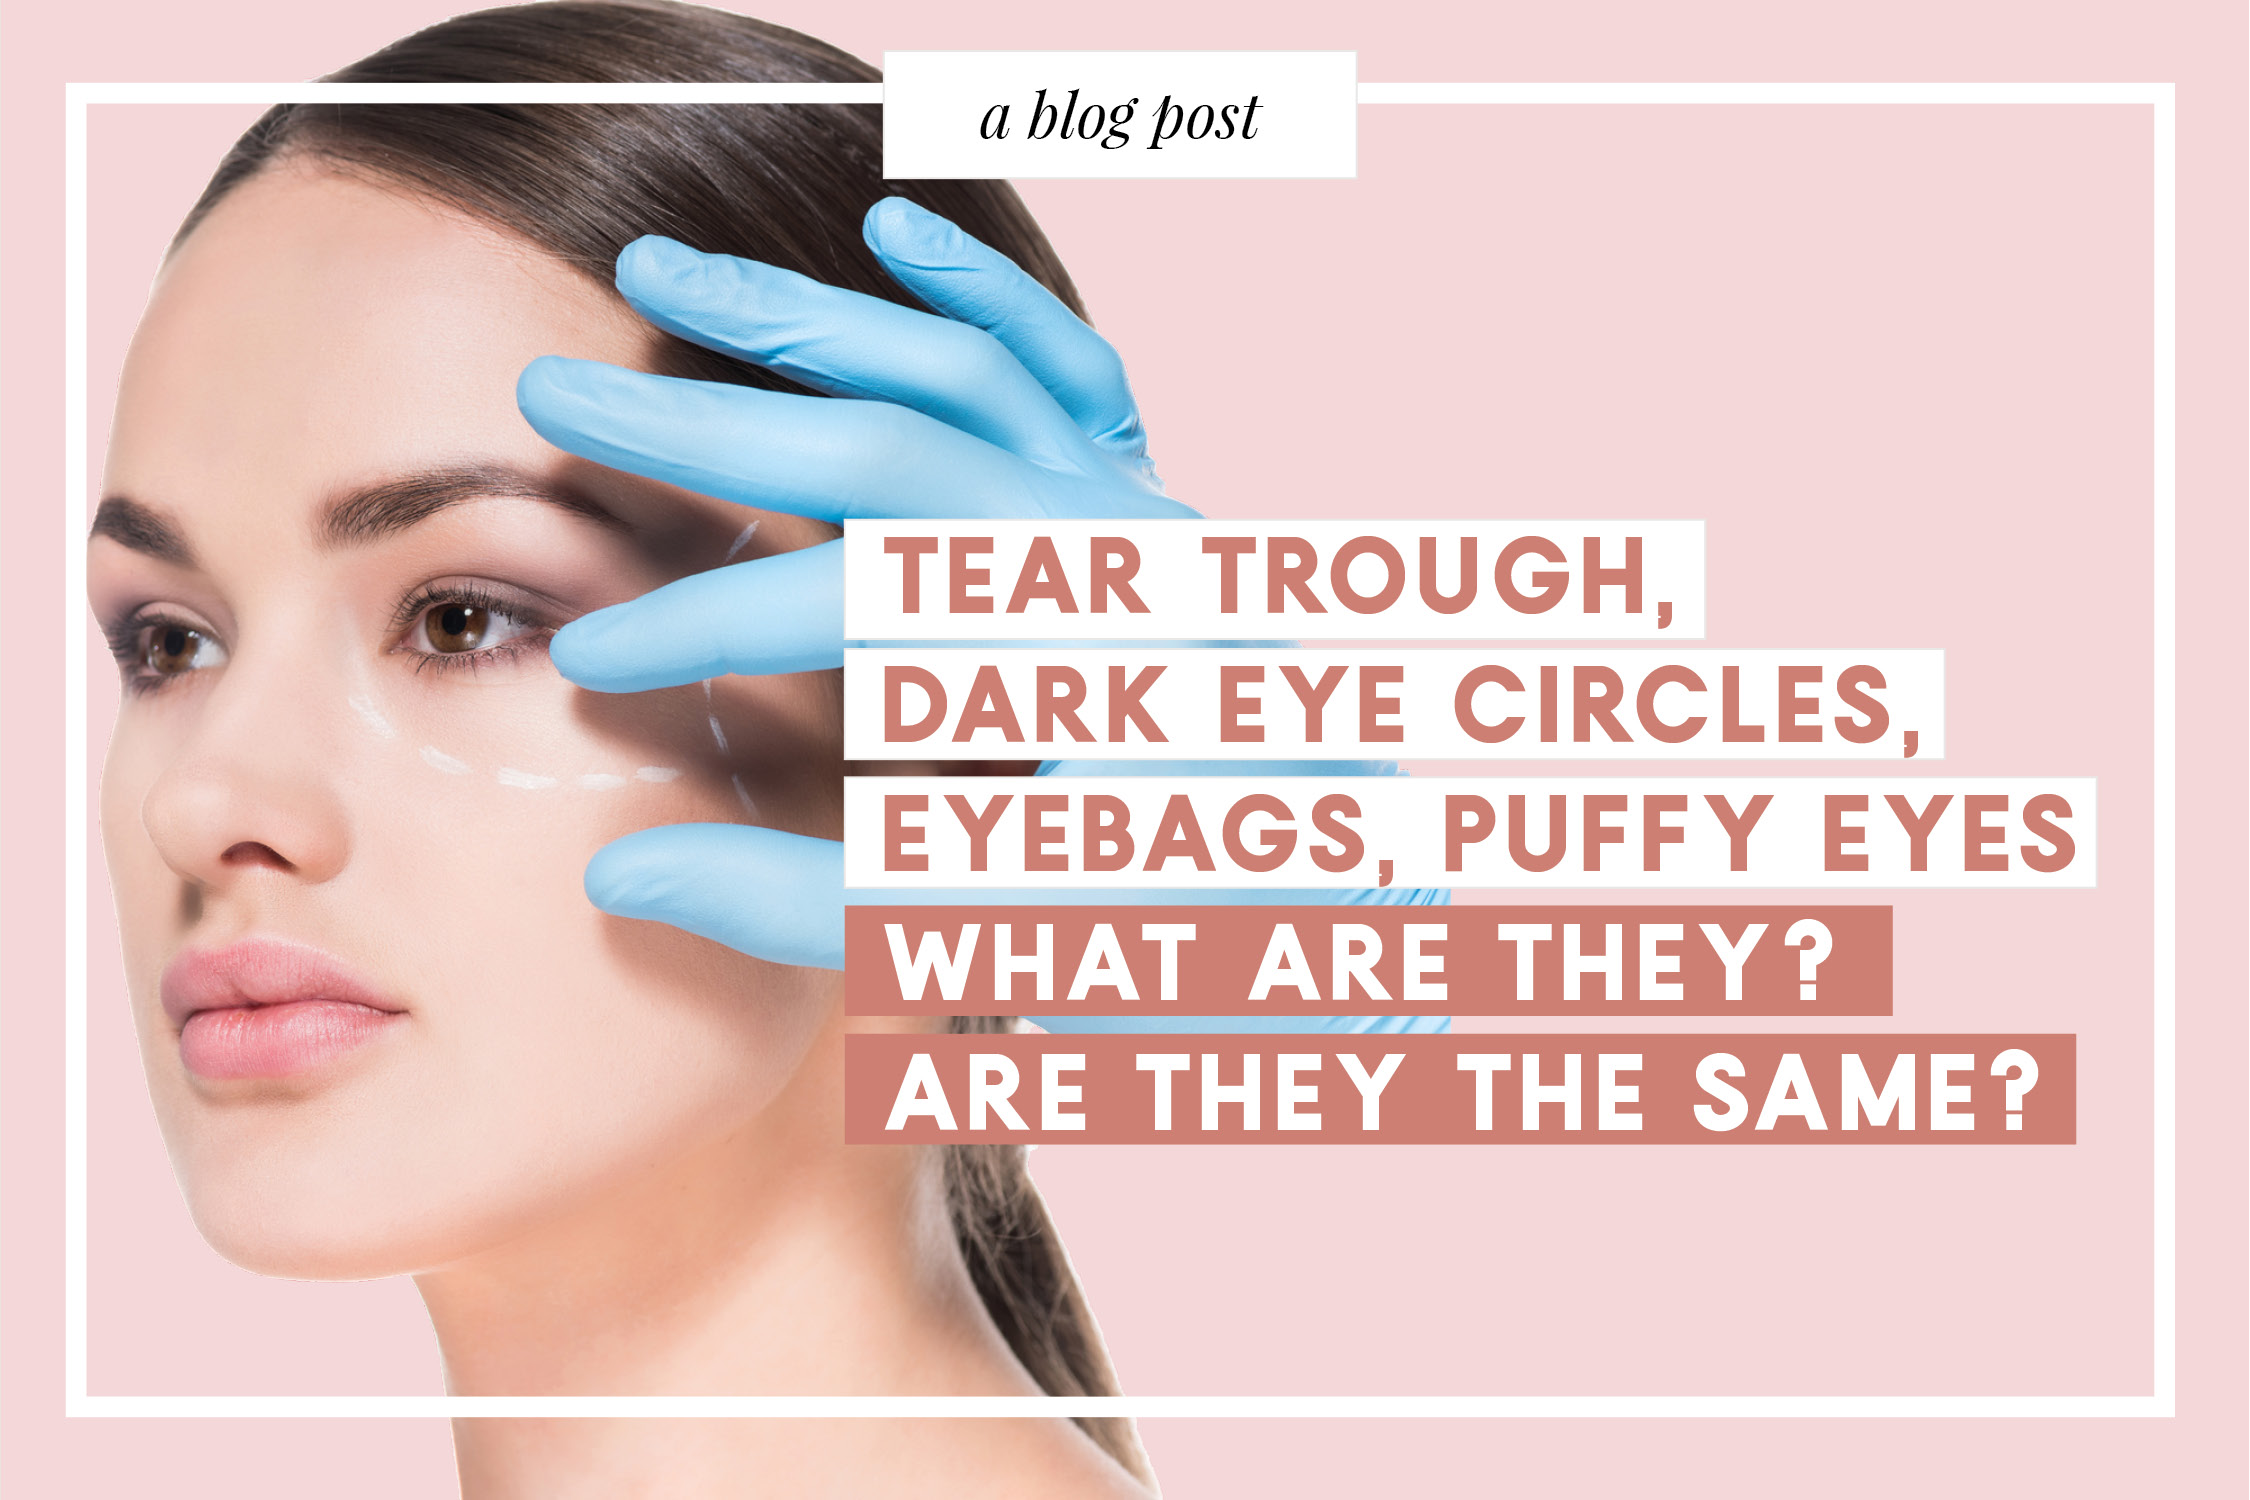 Tear Trough, Dark Eye Circles, Eyebags, Puffy Eyes what are they? Are they the same?